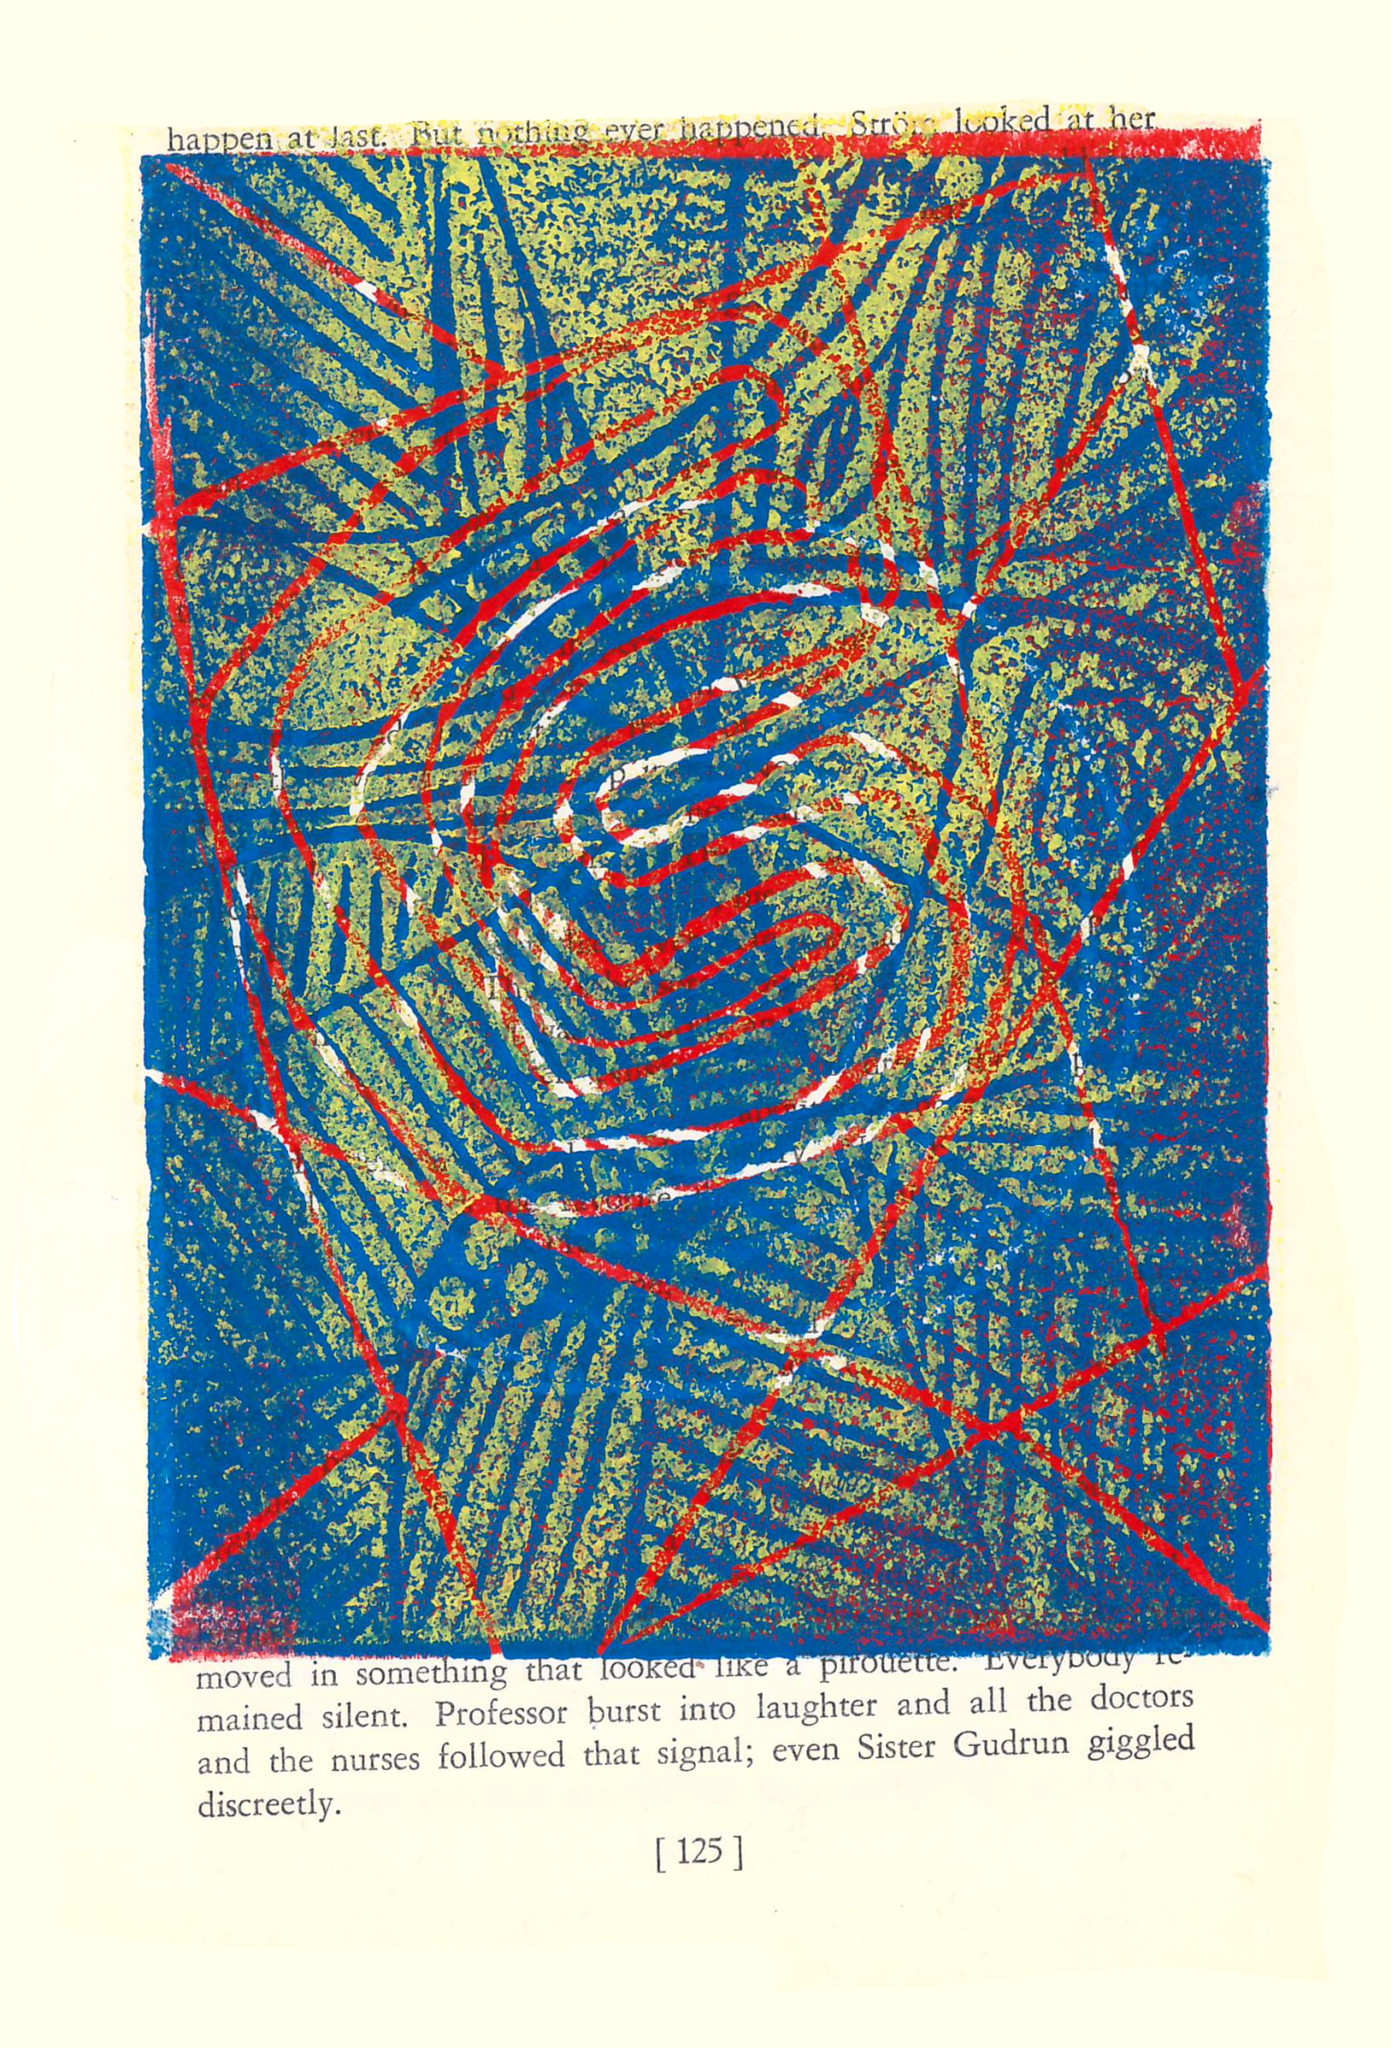 "Three Color Block Print on found book page, February 2017 5.25 X 8.25"" School Programs Workshop at Baker College Prep Jon, 25 years old Animation major at Malcolm X Coming to SkyART for 1 year"